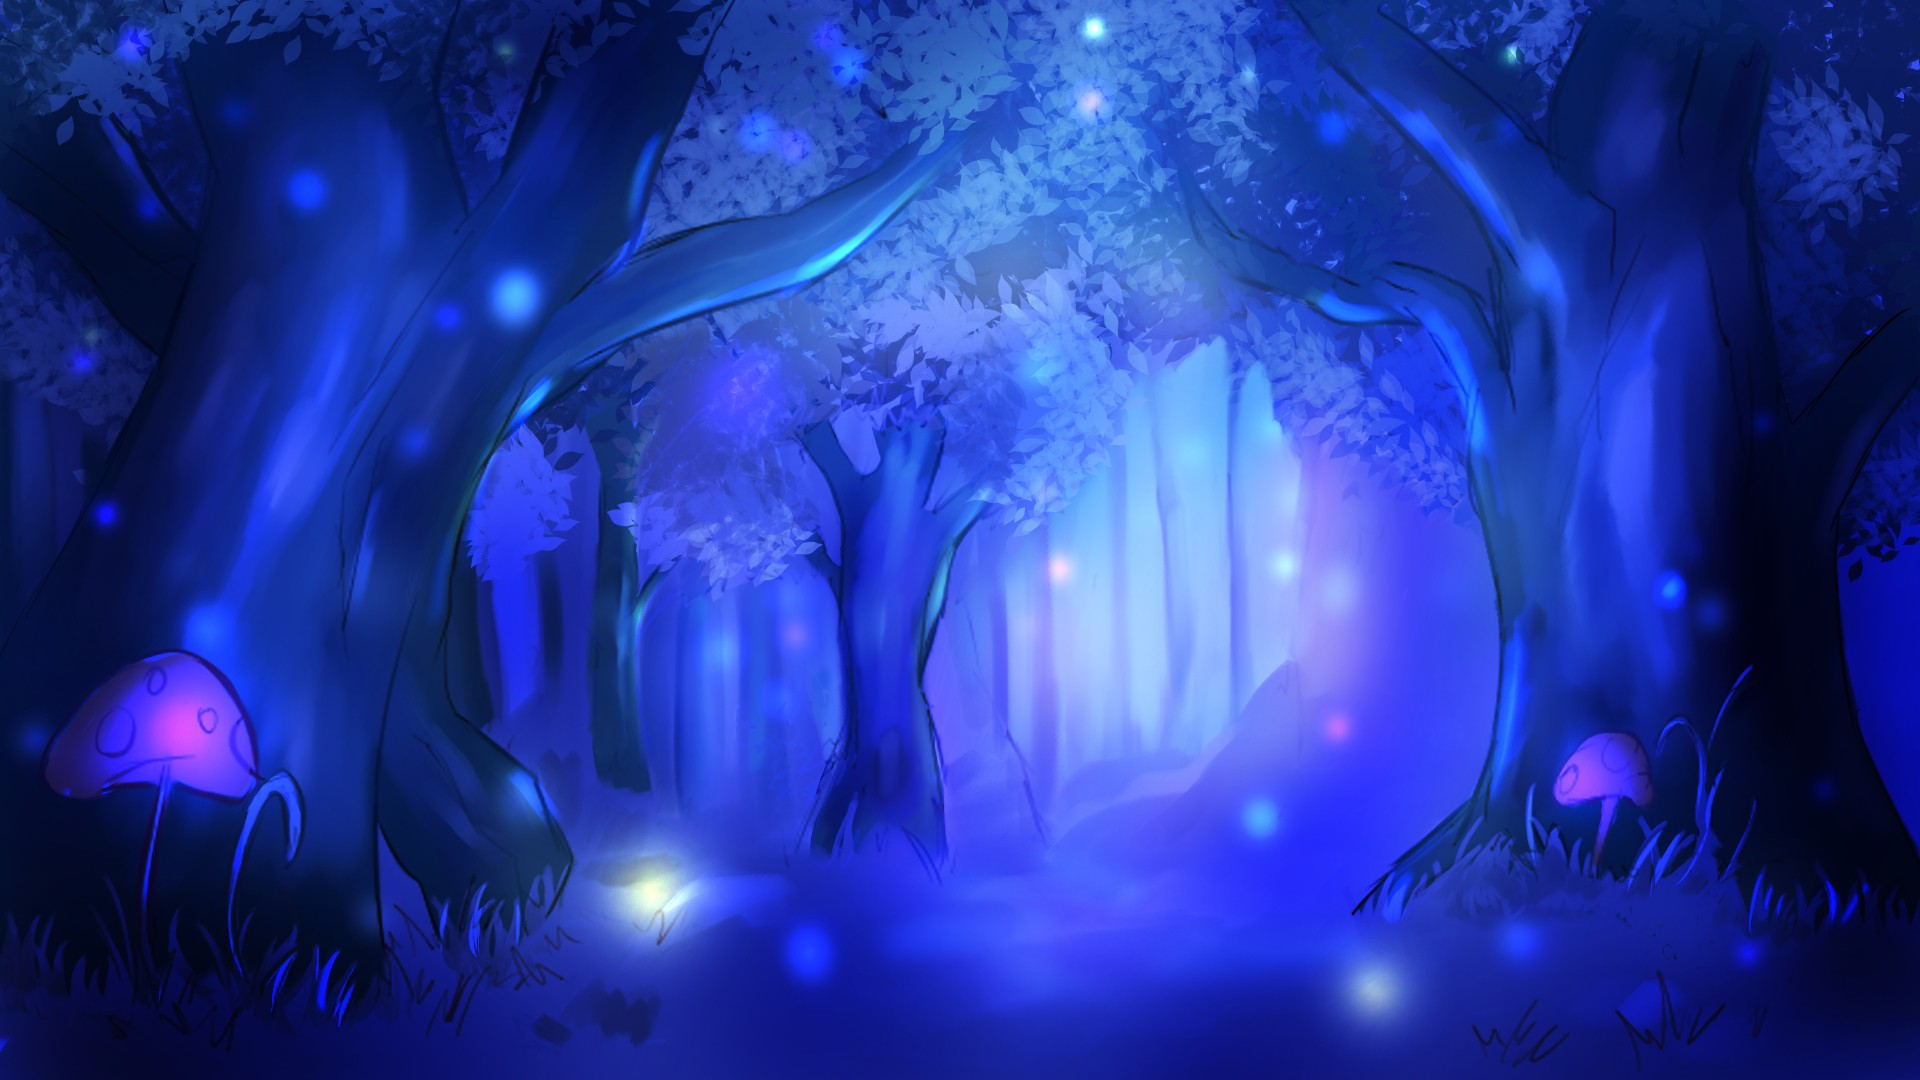 It is called as Shadow Forest that emits bluish calm light, where spirits and ghost live, in animated film Beyond the Far Side